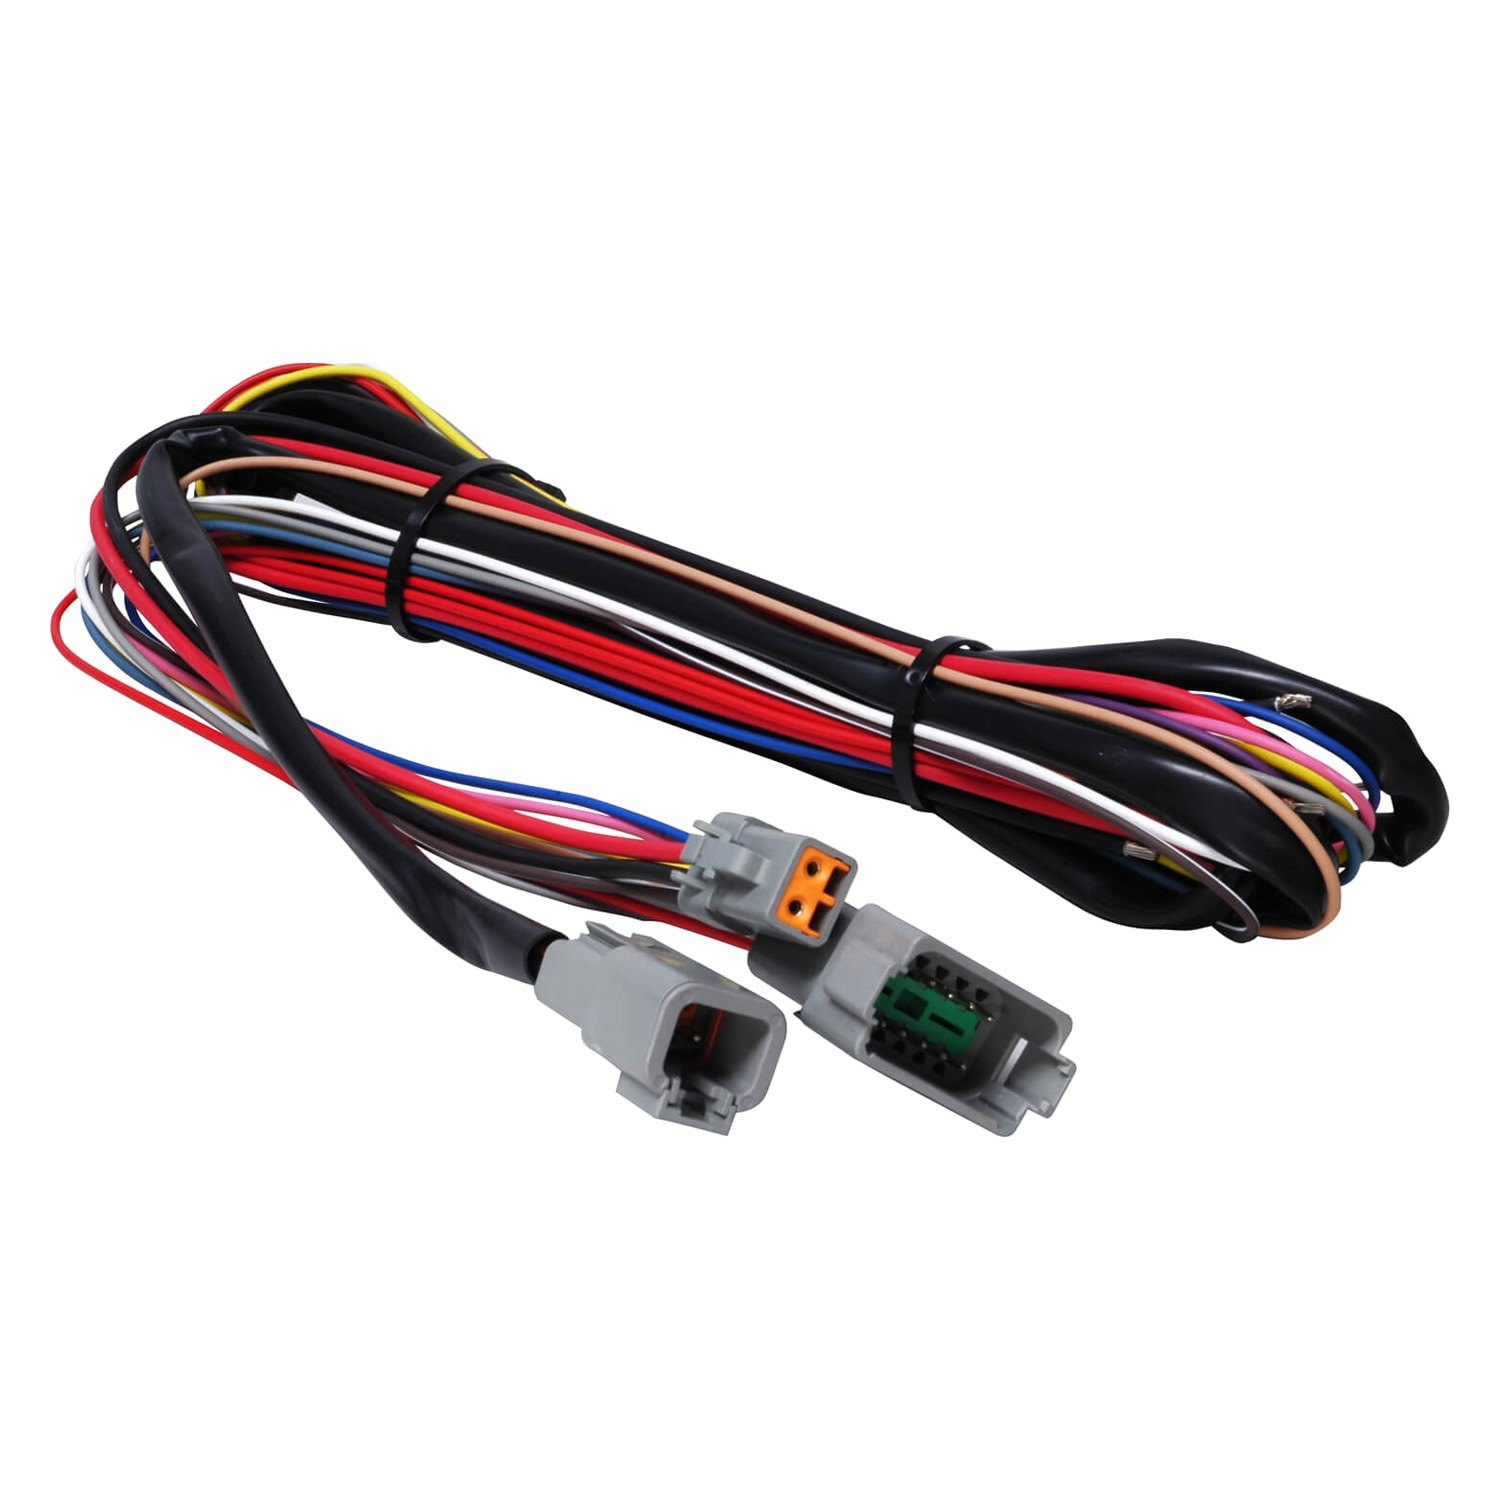 Msd 8855 Digital 7 Programmable Ignition Wire Harness